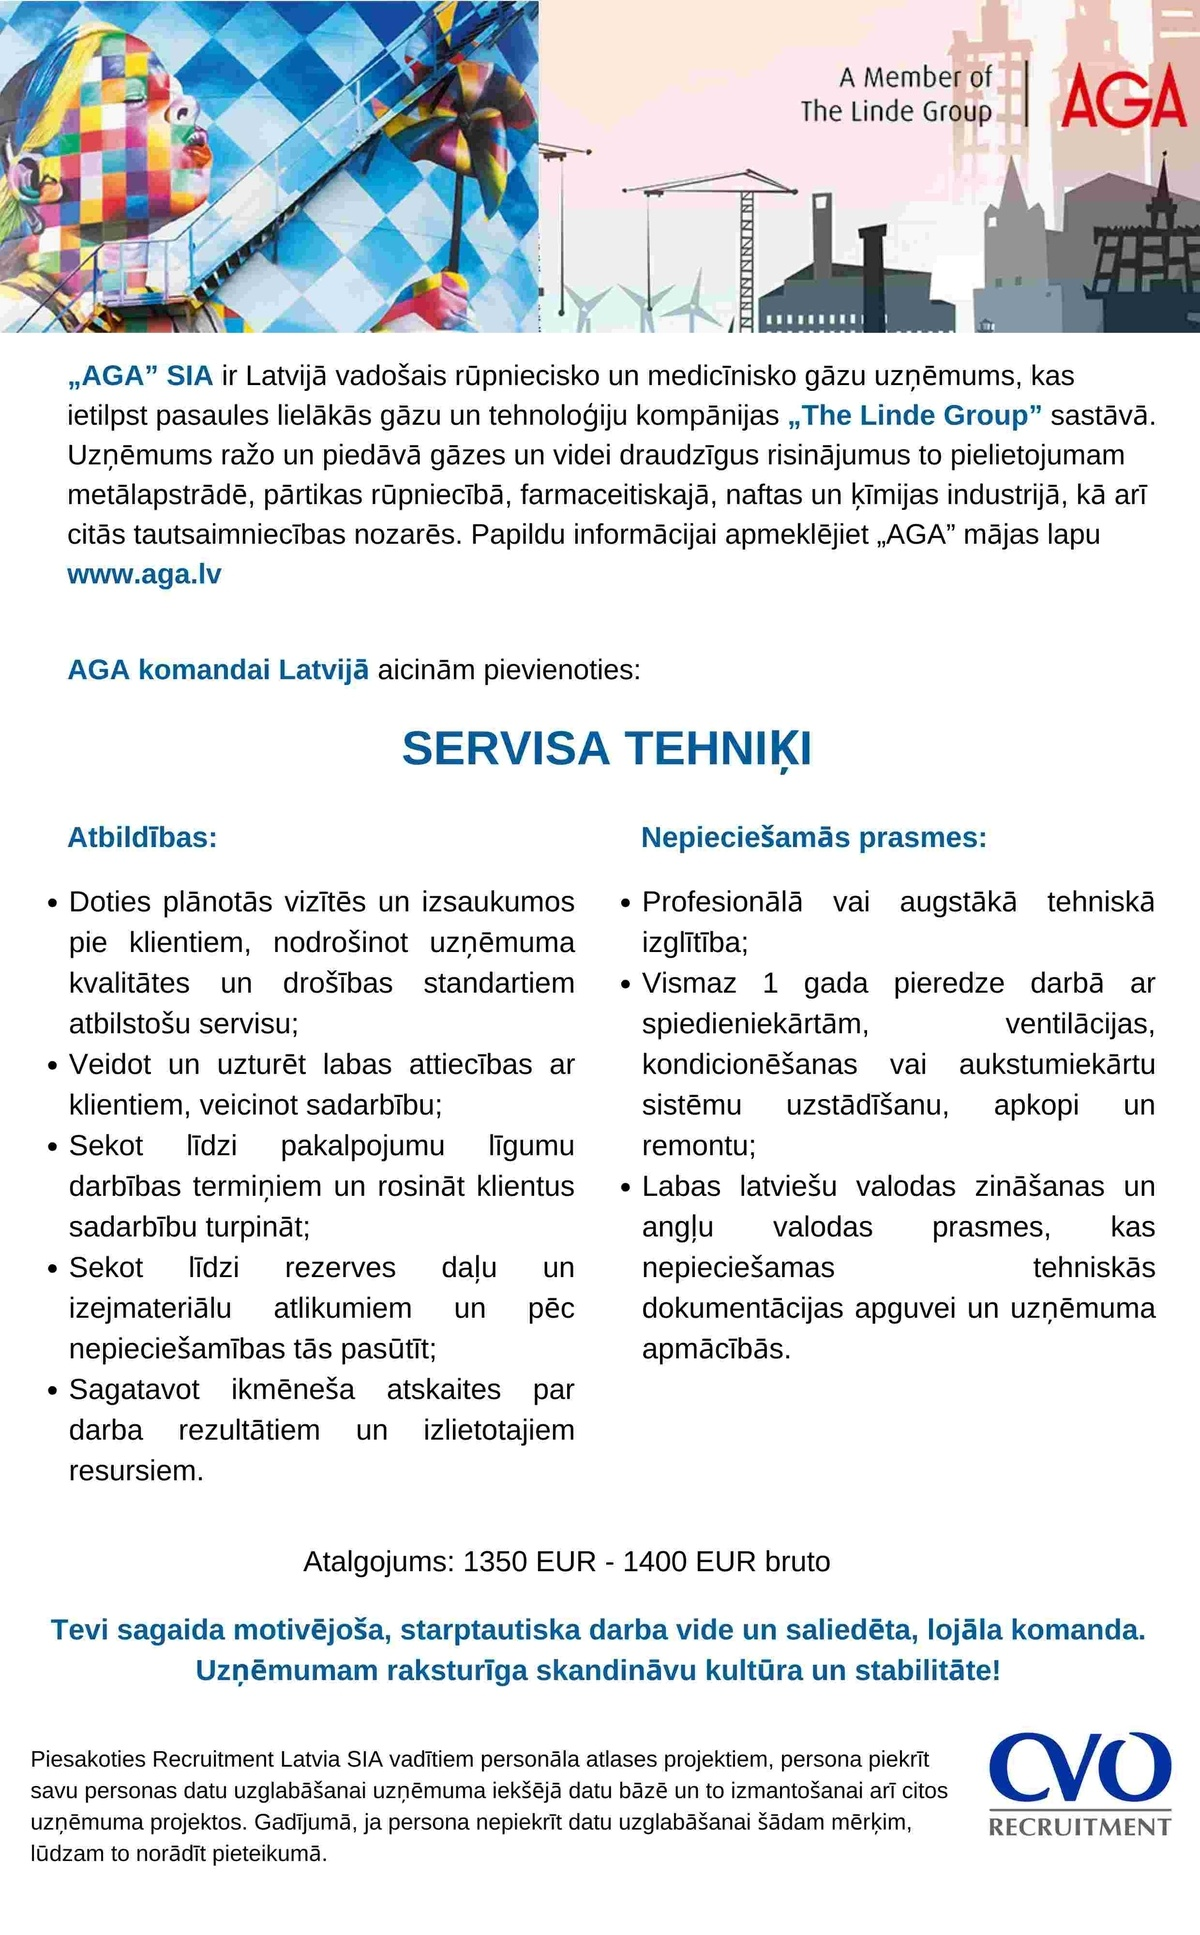 Recruitment Latvia, SIA Servisa tehniķis/-e